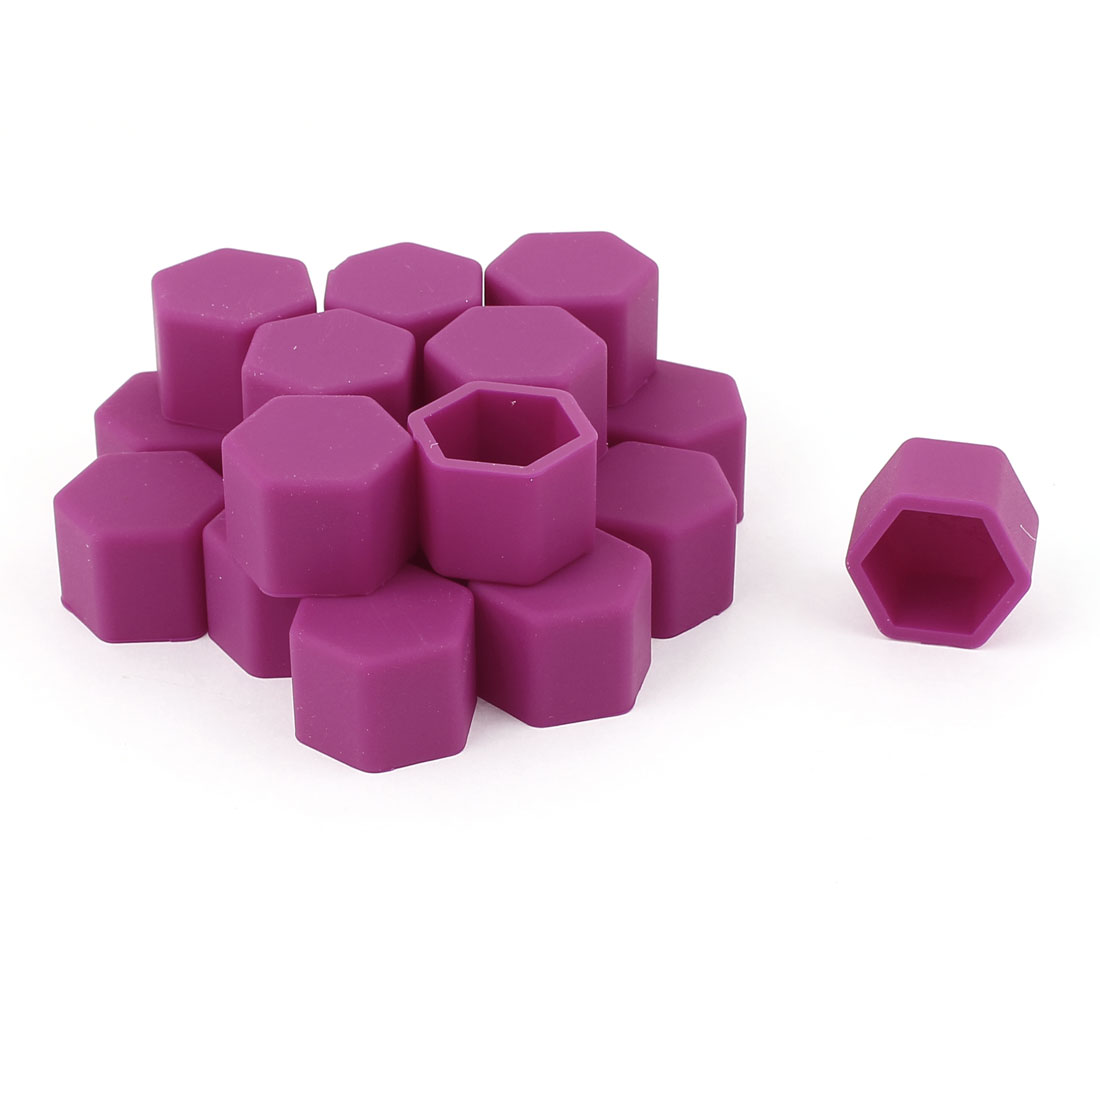 20 Pcs 19mm Silicone Wheel Covers Hub Tyres Screw Dust Caps Purple for Nissan Toyota